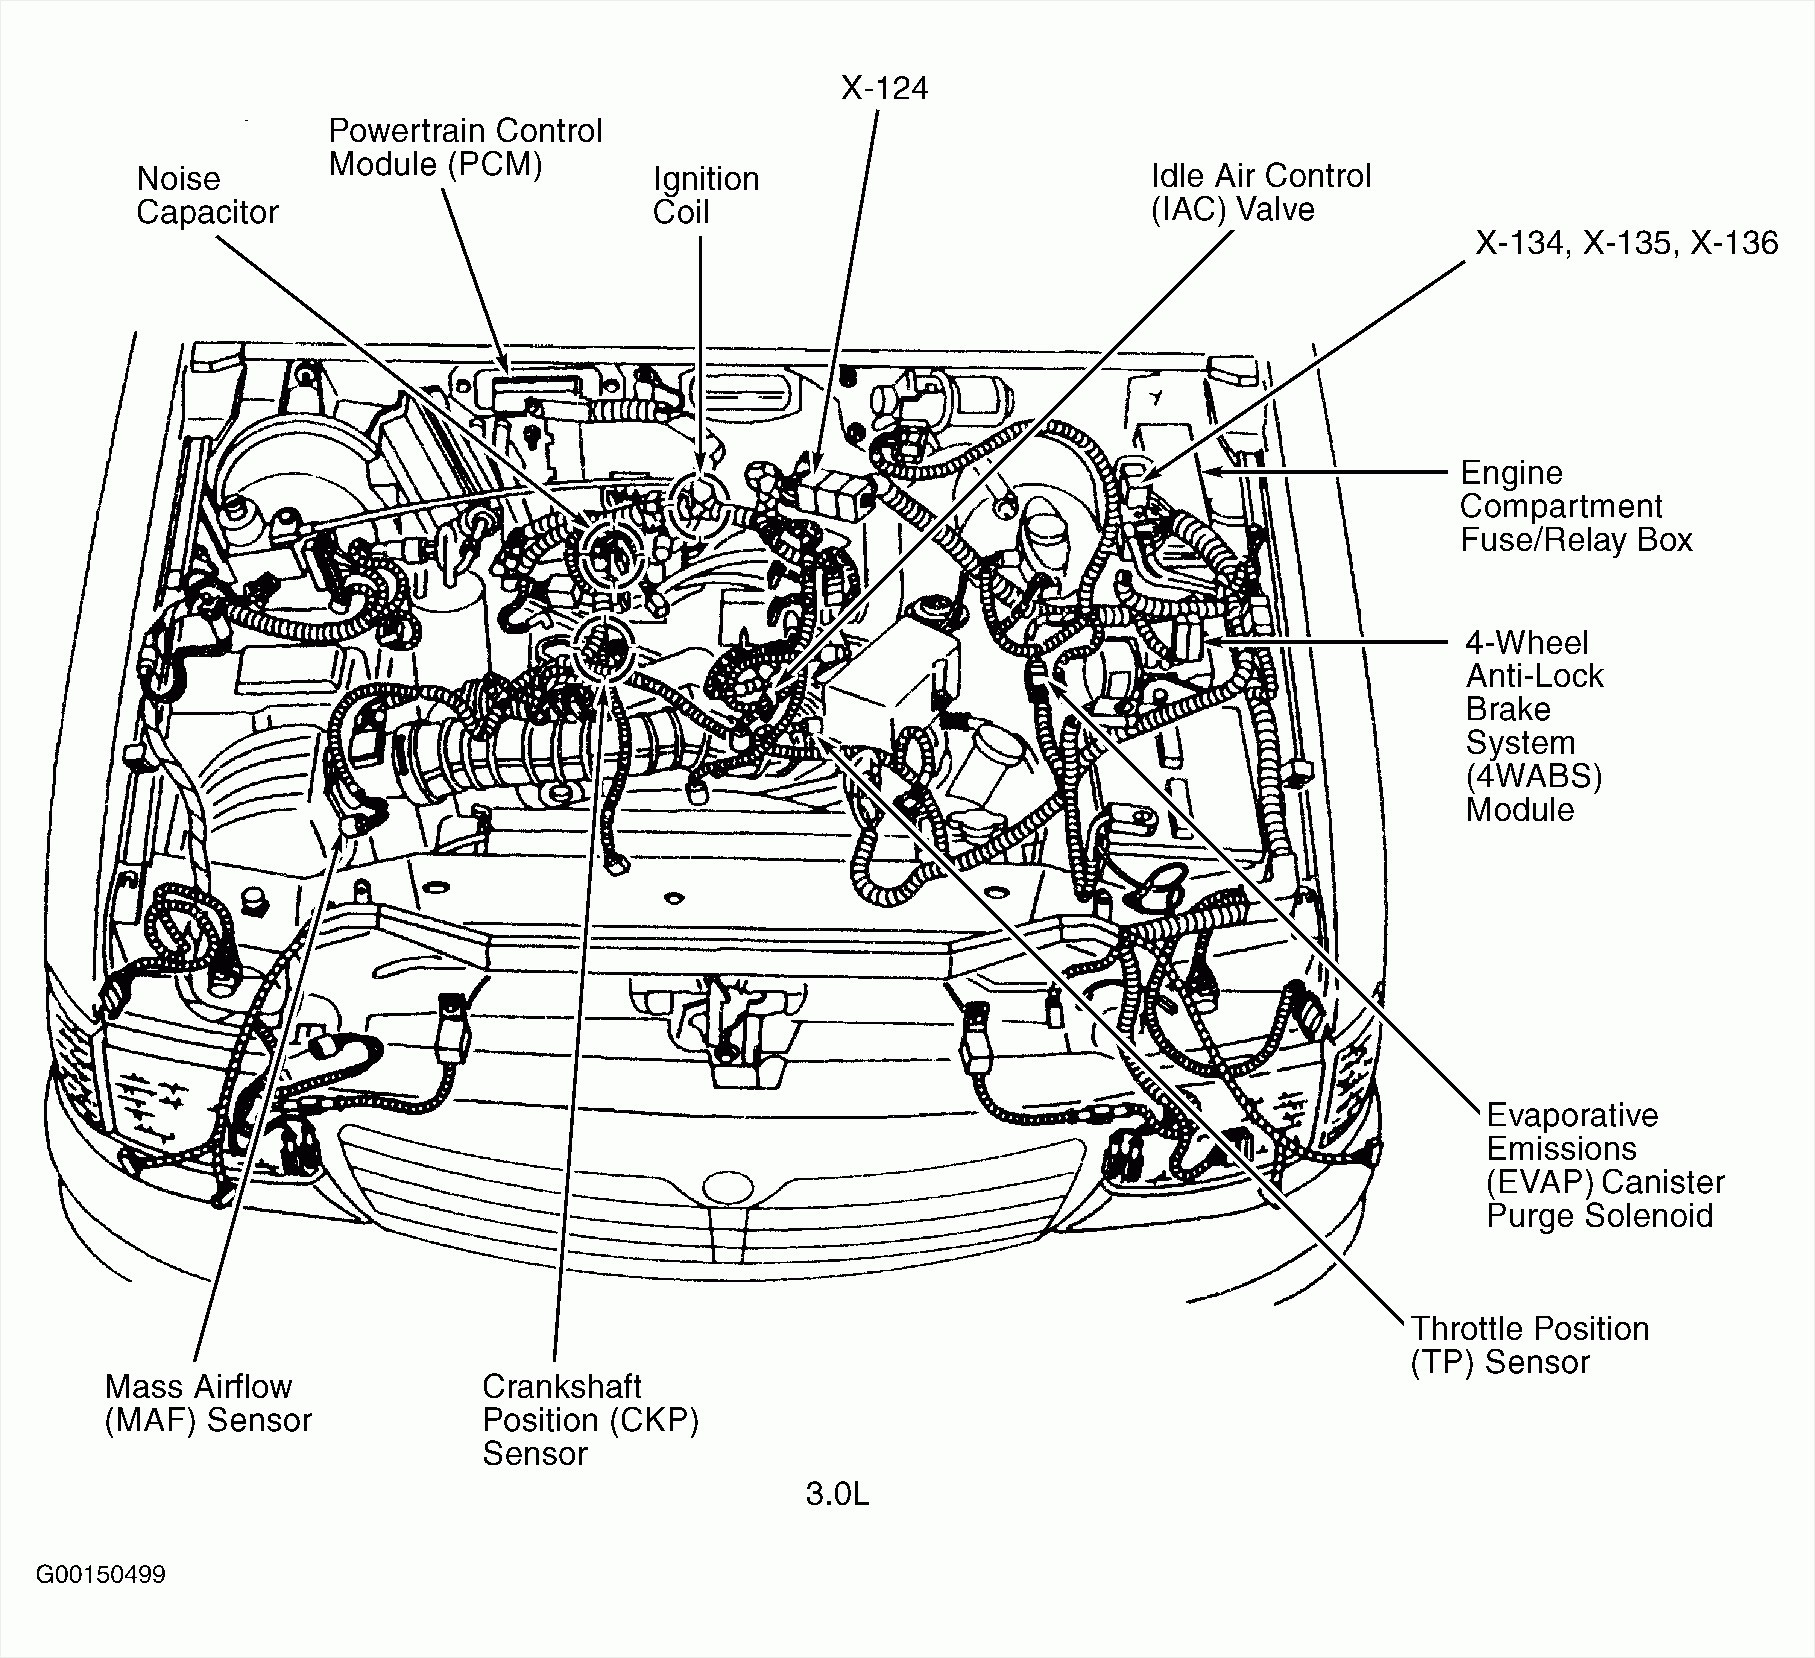 2007 chevy impala ss engine parts diagram wiring diagram option  2 5l chevy engine diagram wiring diagrams long 2007 chevy impala ss engine parts diagram